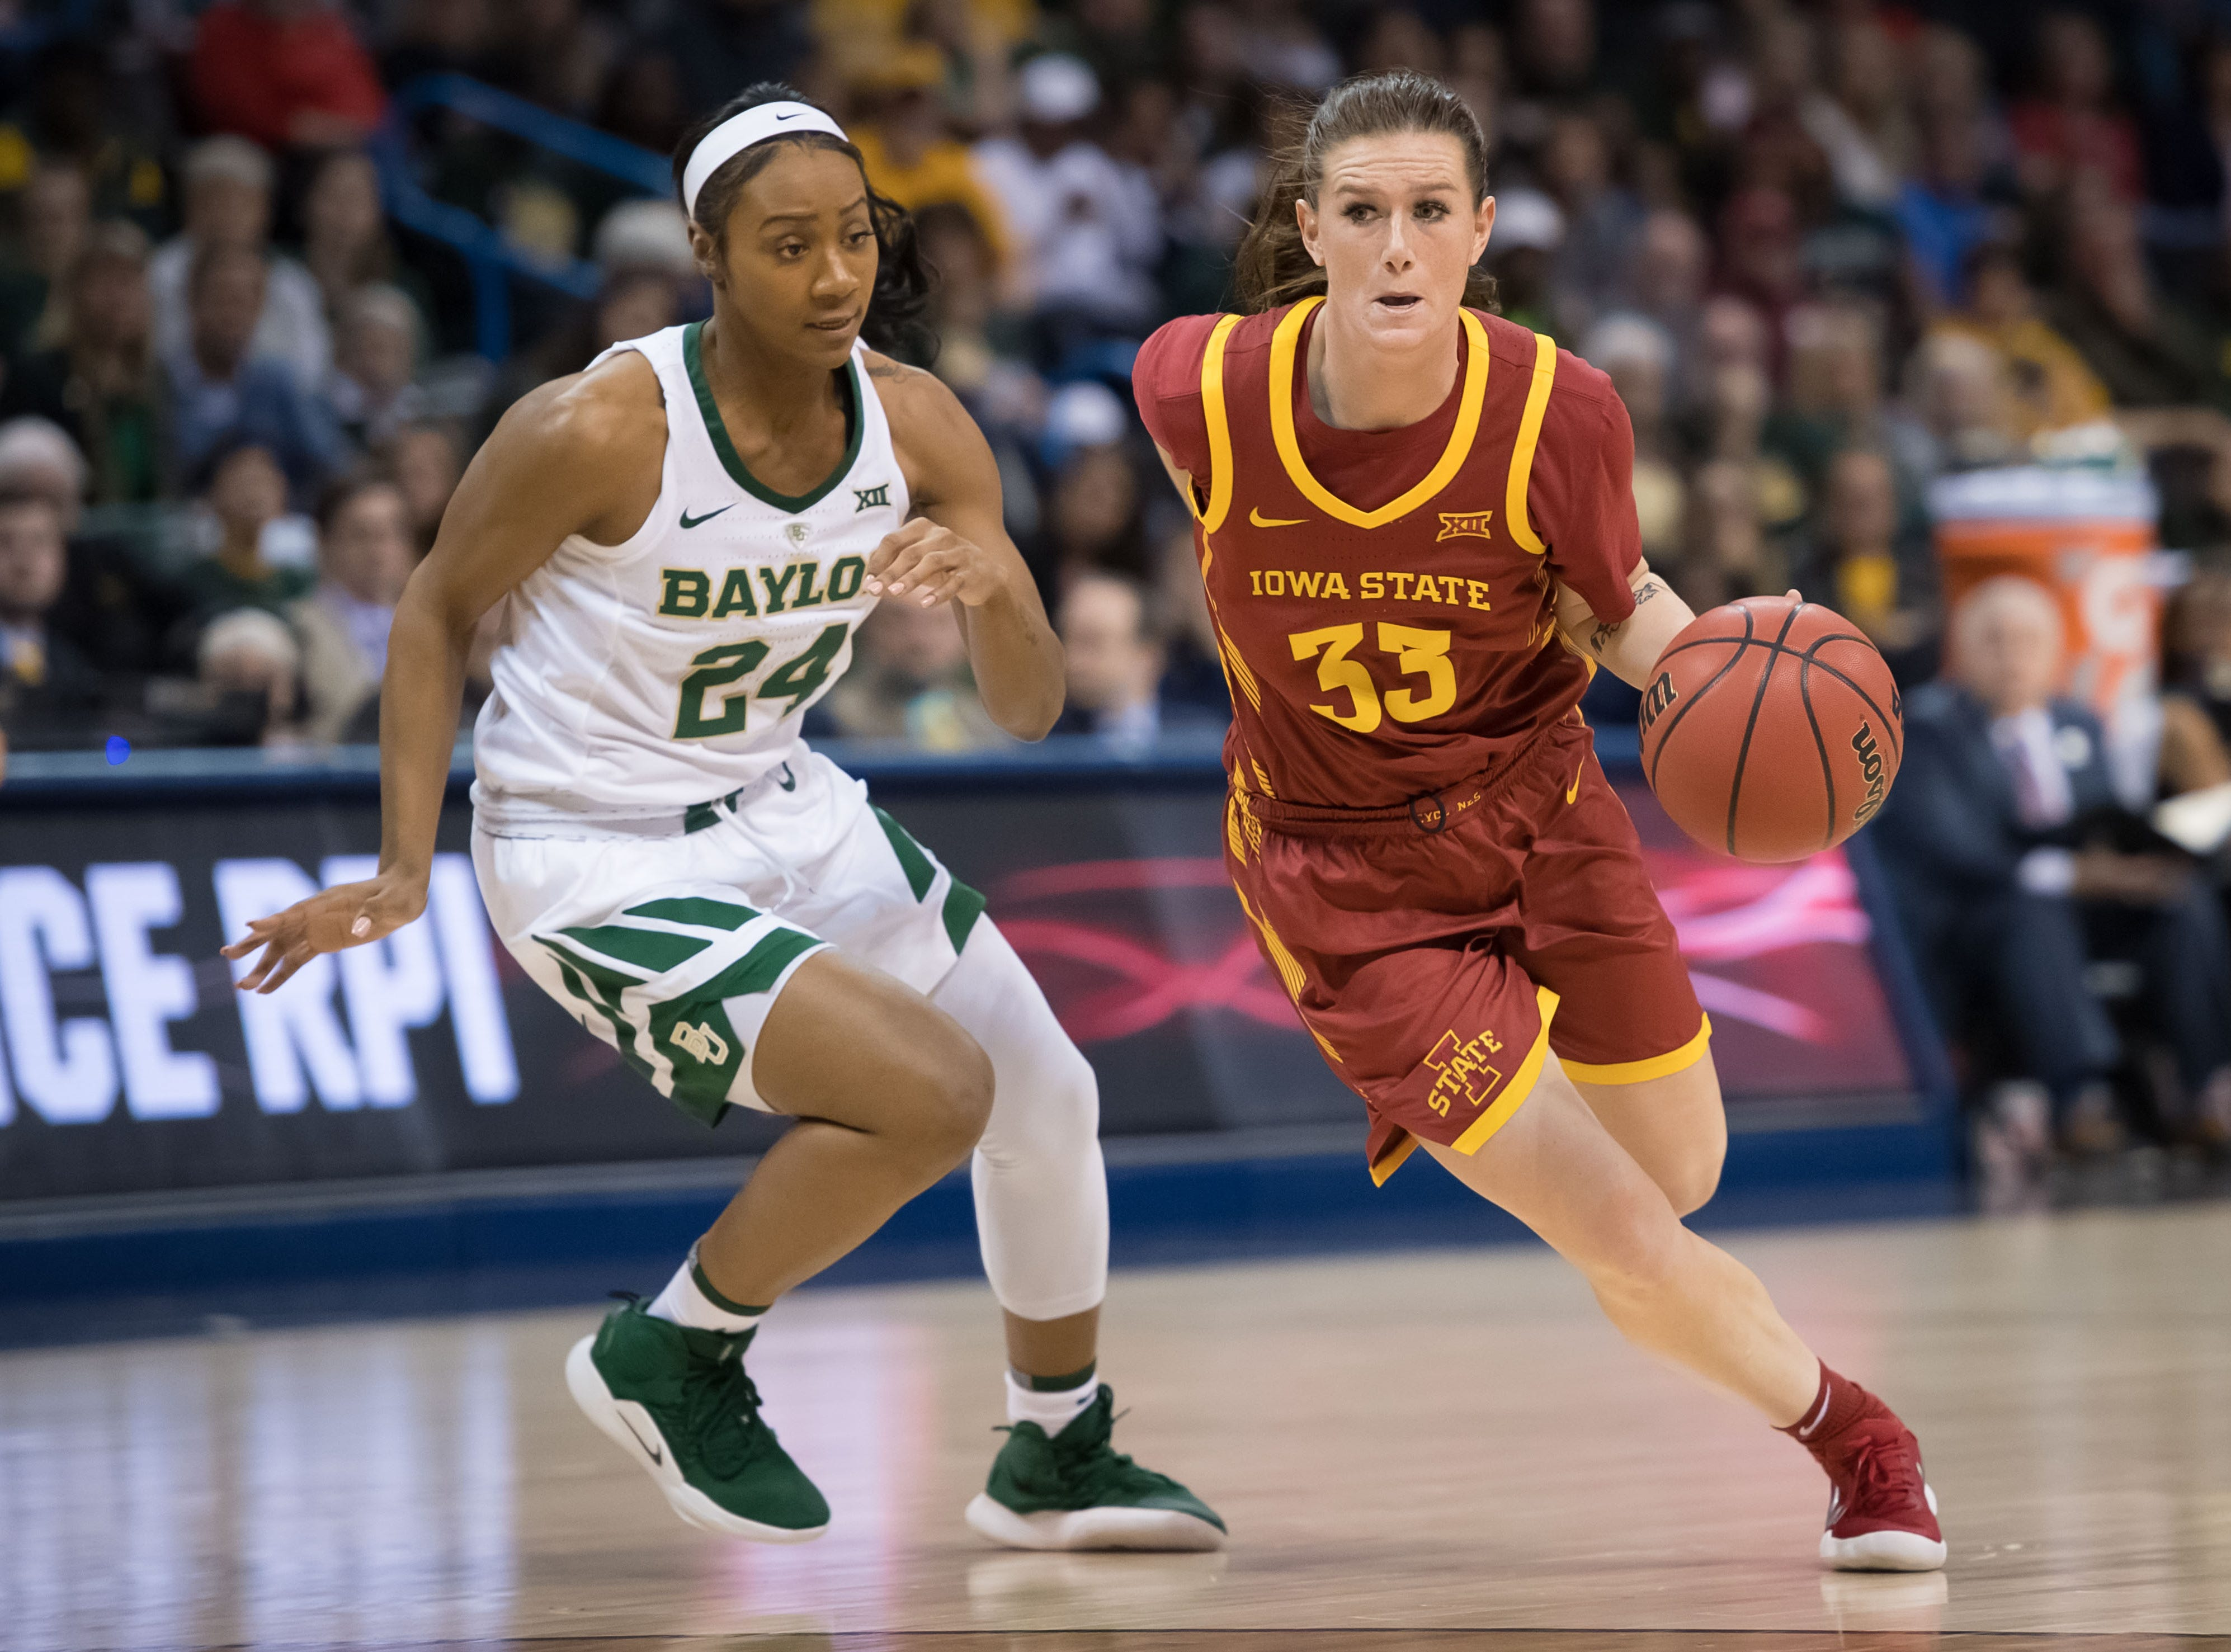 Iowa State Cyclones guard Alexa Middleton (33) dribbles past Baylor Lady Bears guard Chloe Jackson (24) during the third quarter in the women's Big 12 Conference Tournament at Chesapeake Energy Arena.